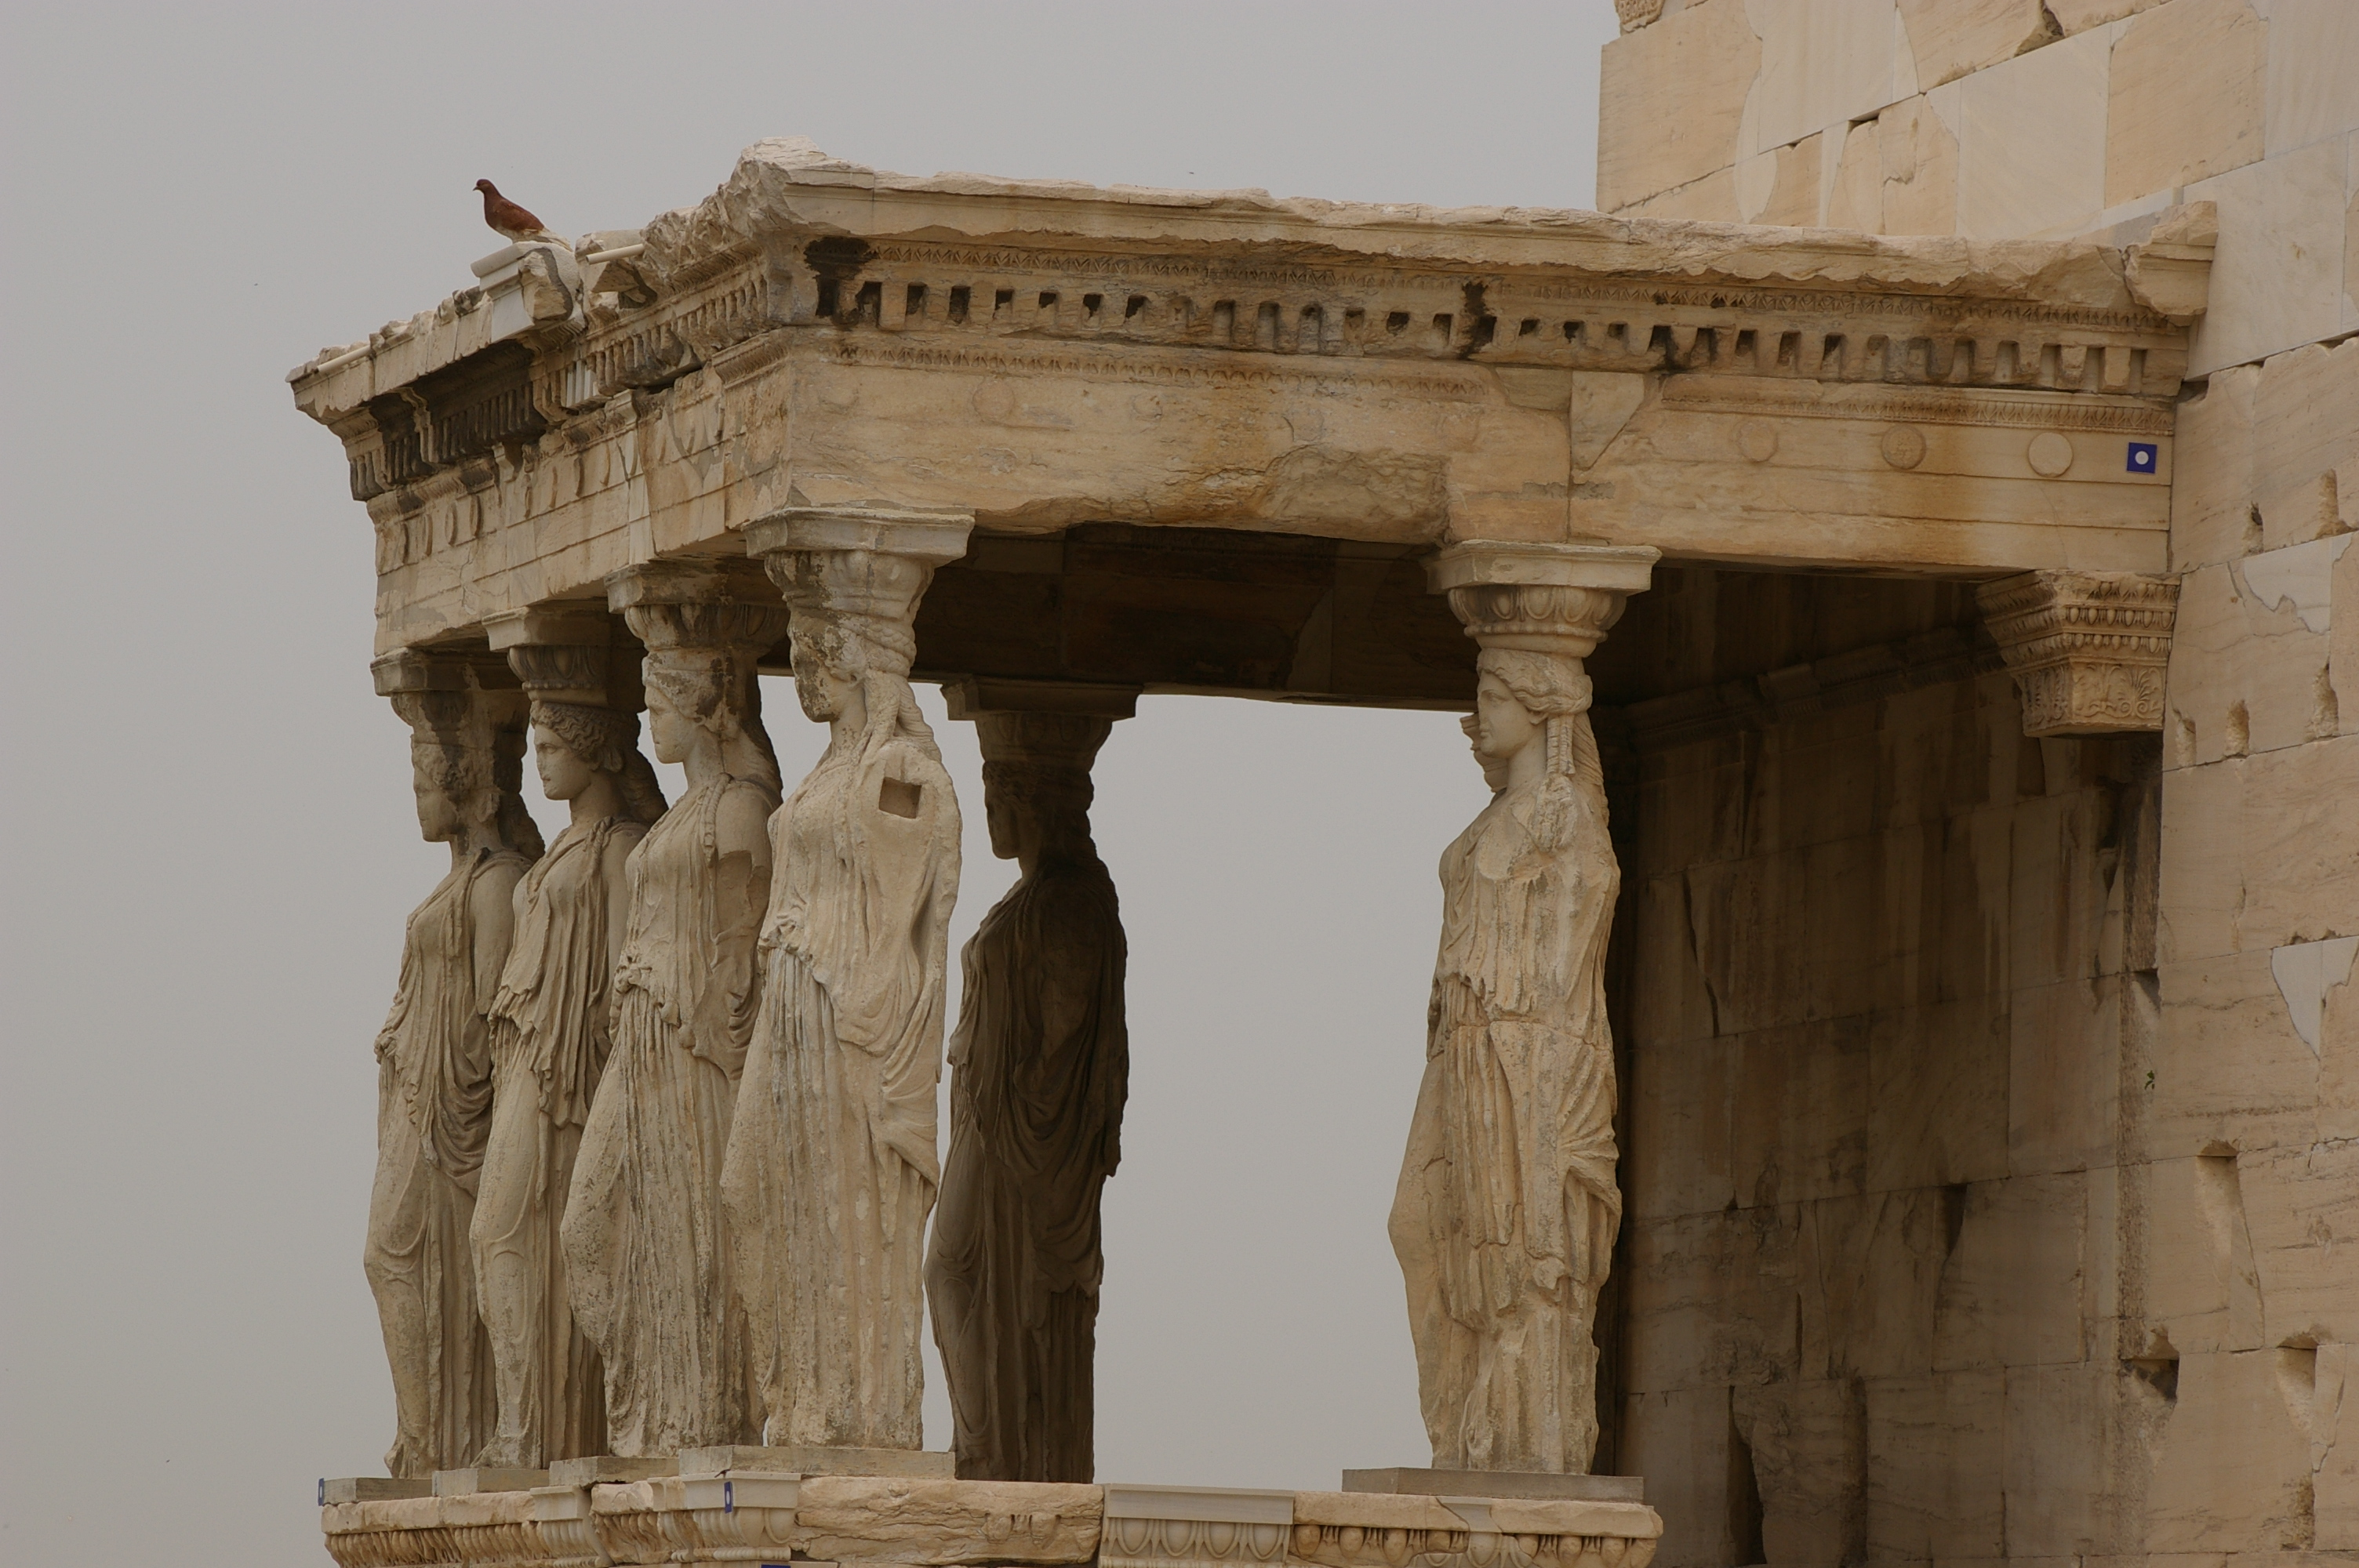 erechtheion and its caryatids essay The erechtheion, though not the most interesting of the building complex in the acropolis, is a remarkable world-famous impressive construction for its porch of the caryatids.